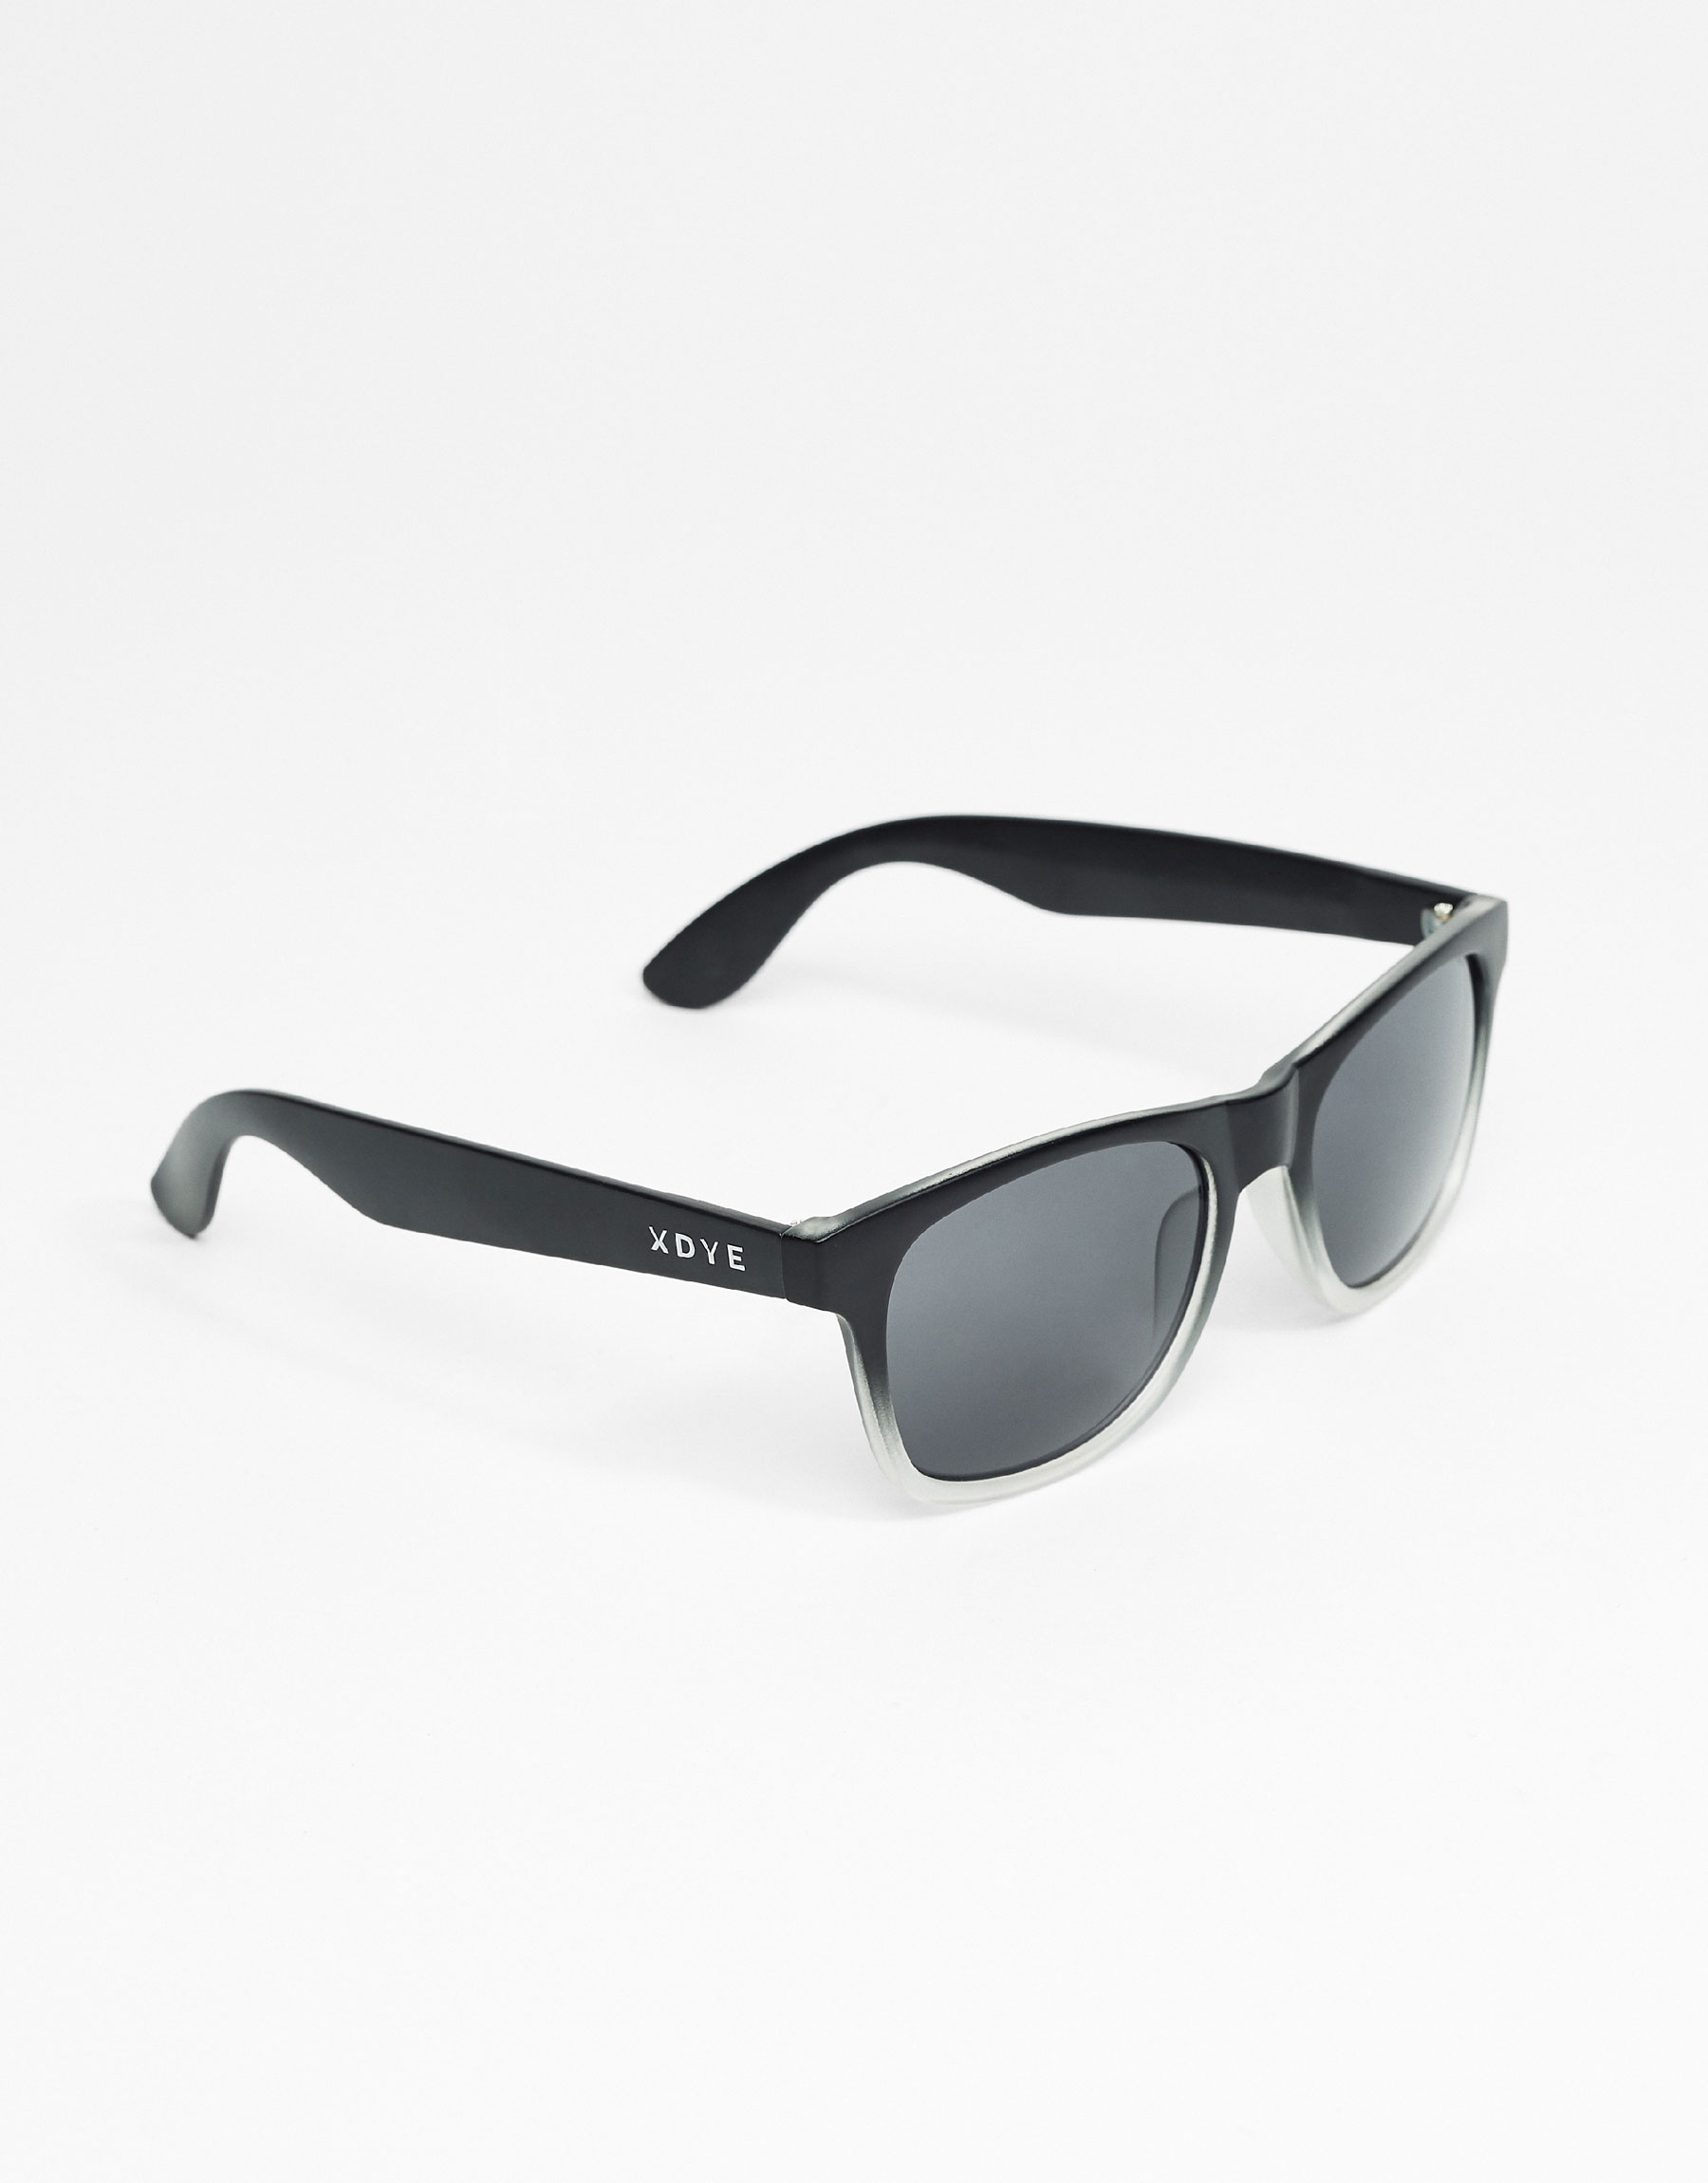 XDYE Sunglasses - Transparent Gradient